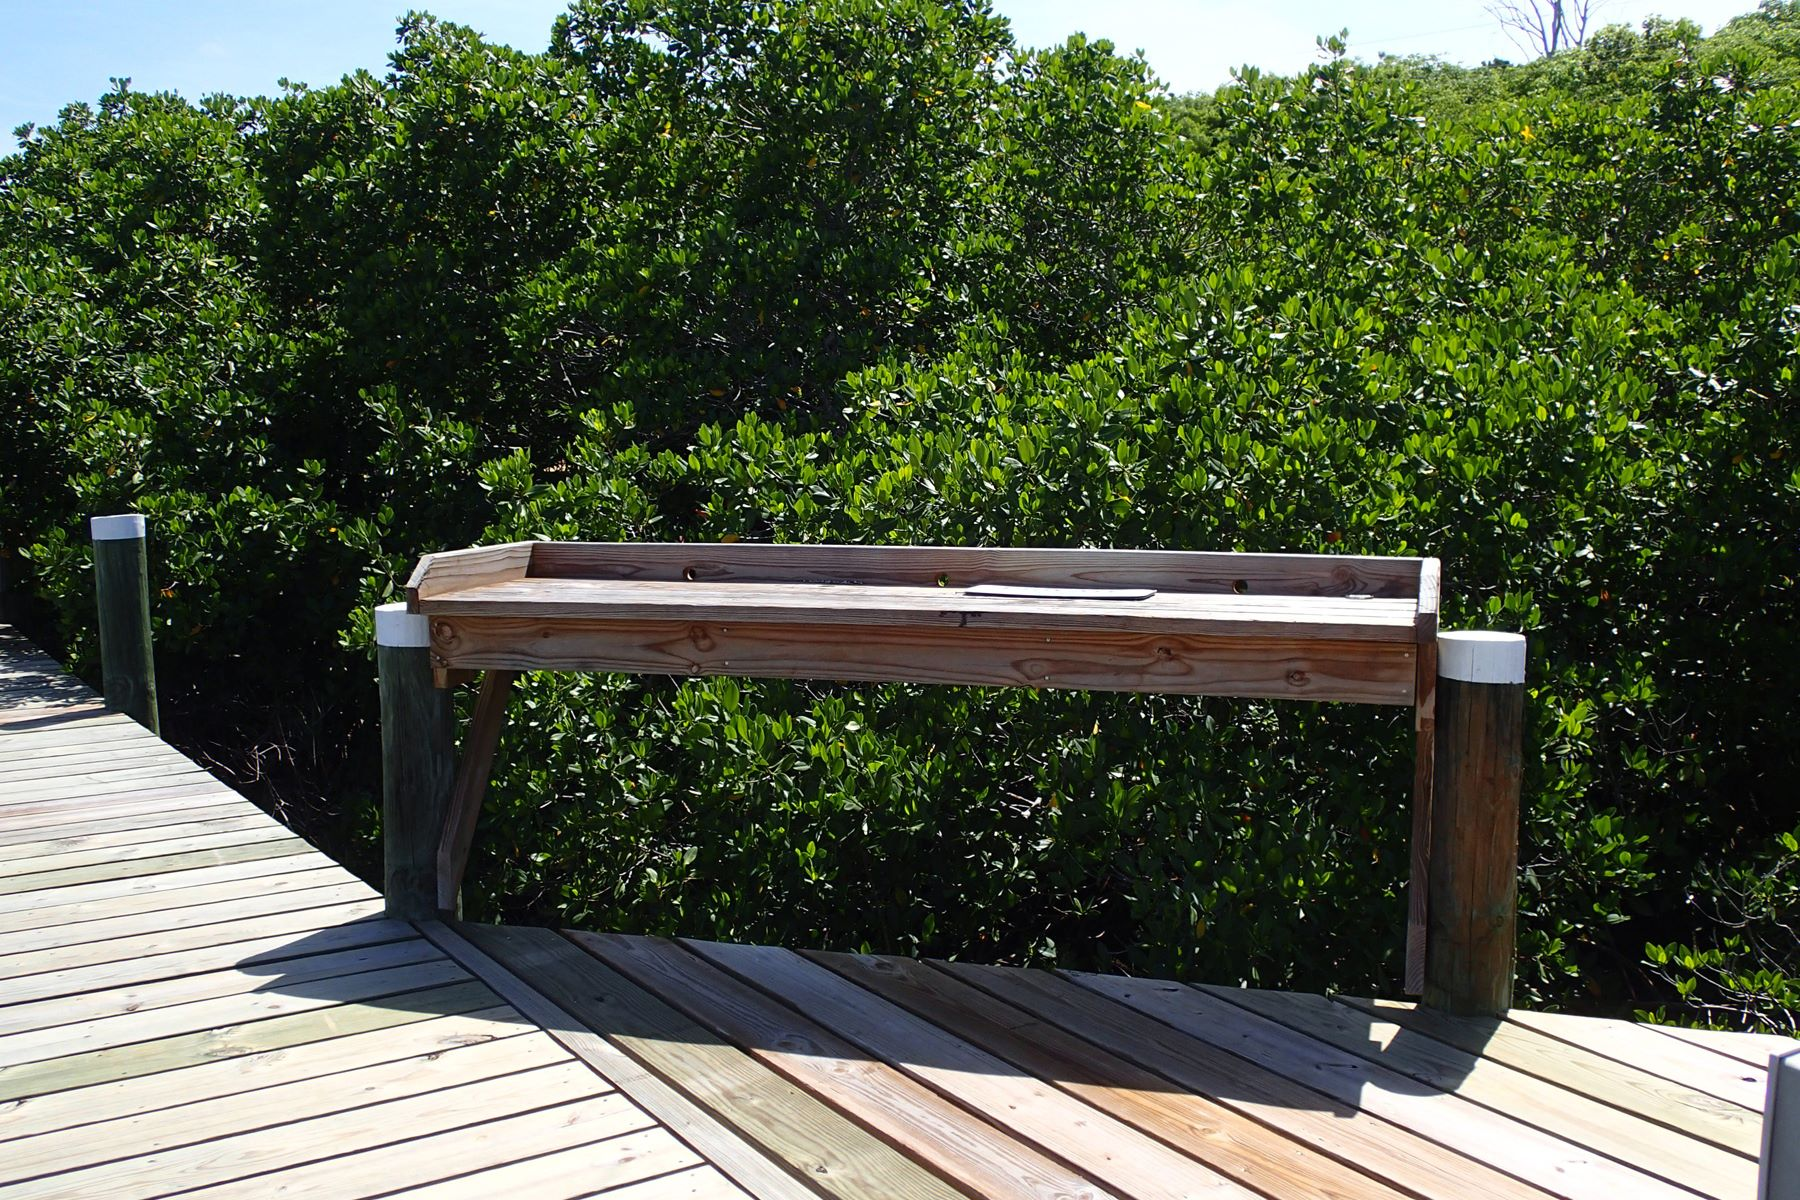 Additional photo for property listing at Nigh Creek Boat Slips C & D Elbow Cay Hope Town, Abaco Bahamas